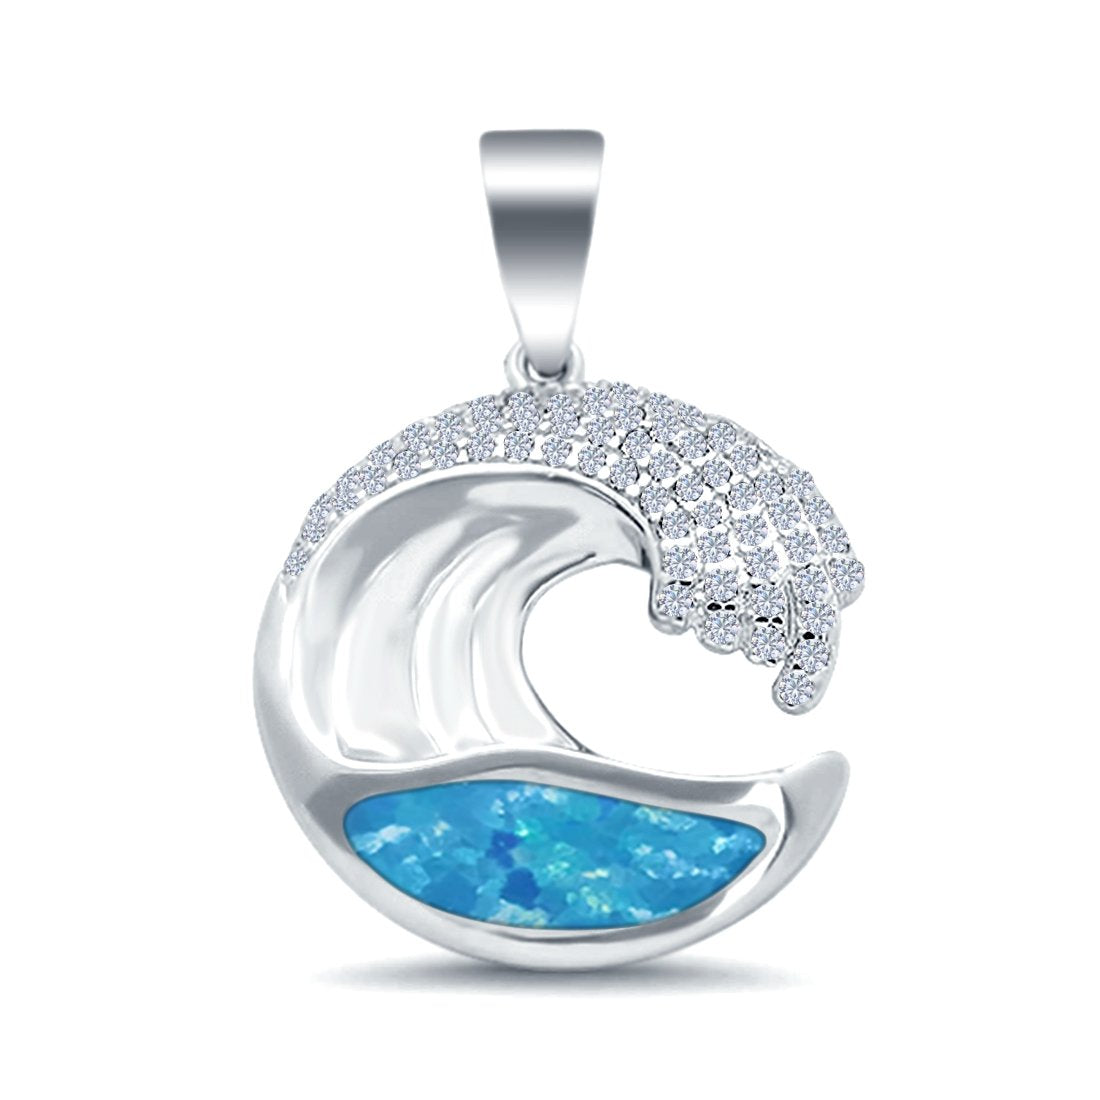 Details about  /.925 Sterling Silver Simulated Opal Open Work   Pendant Necklace